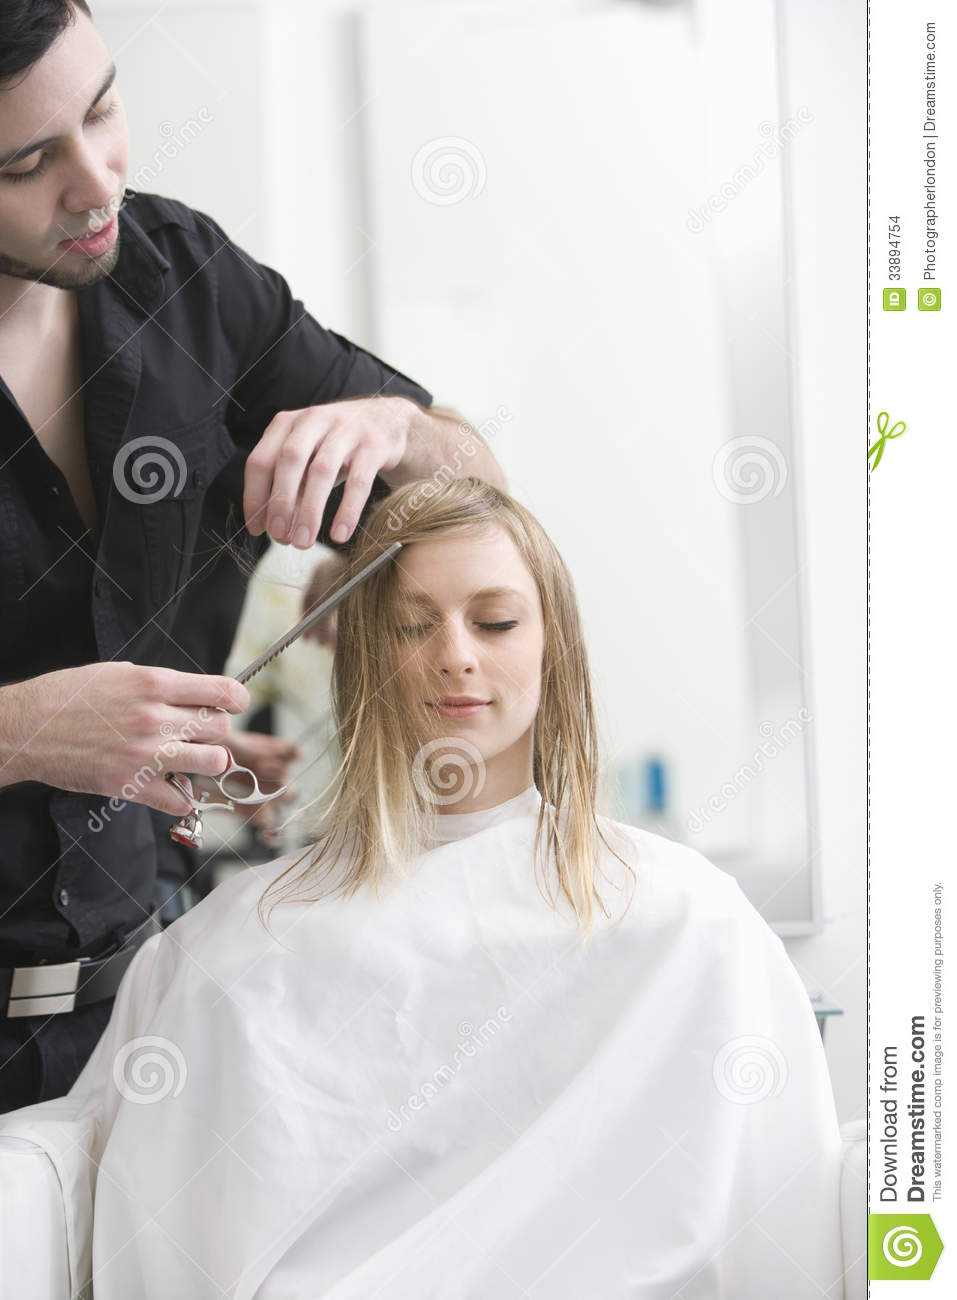 Salon Haircut : Woman Getting Haircut From Hairdresser At Salon Stock Images - Image ...